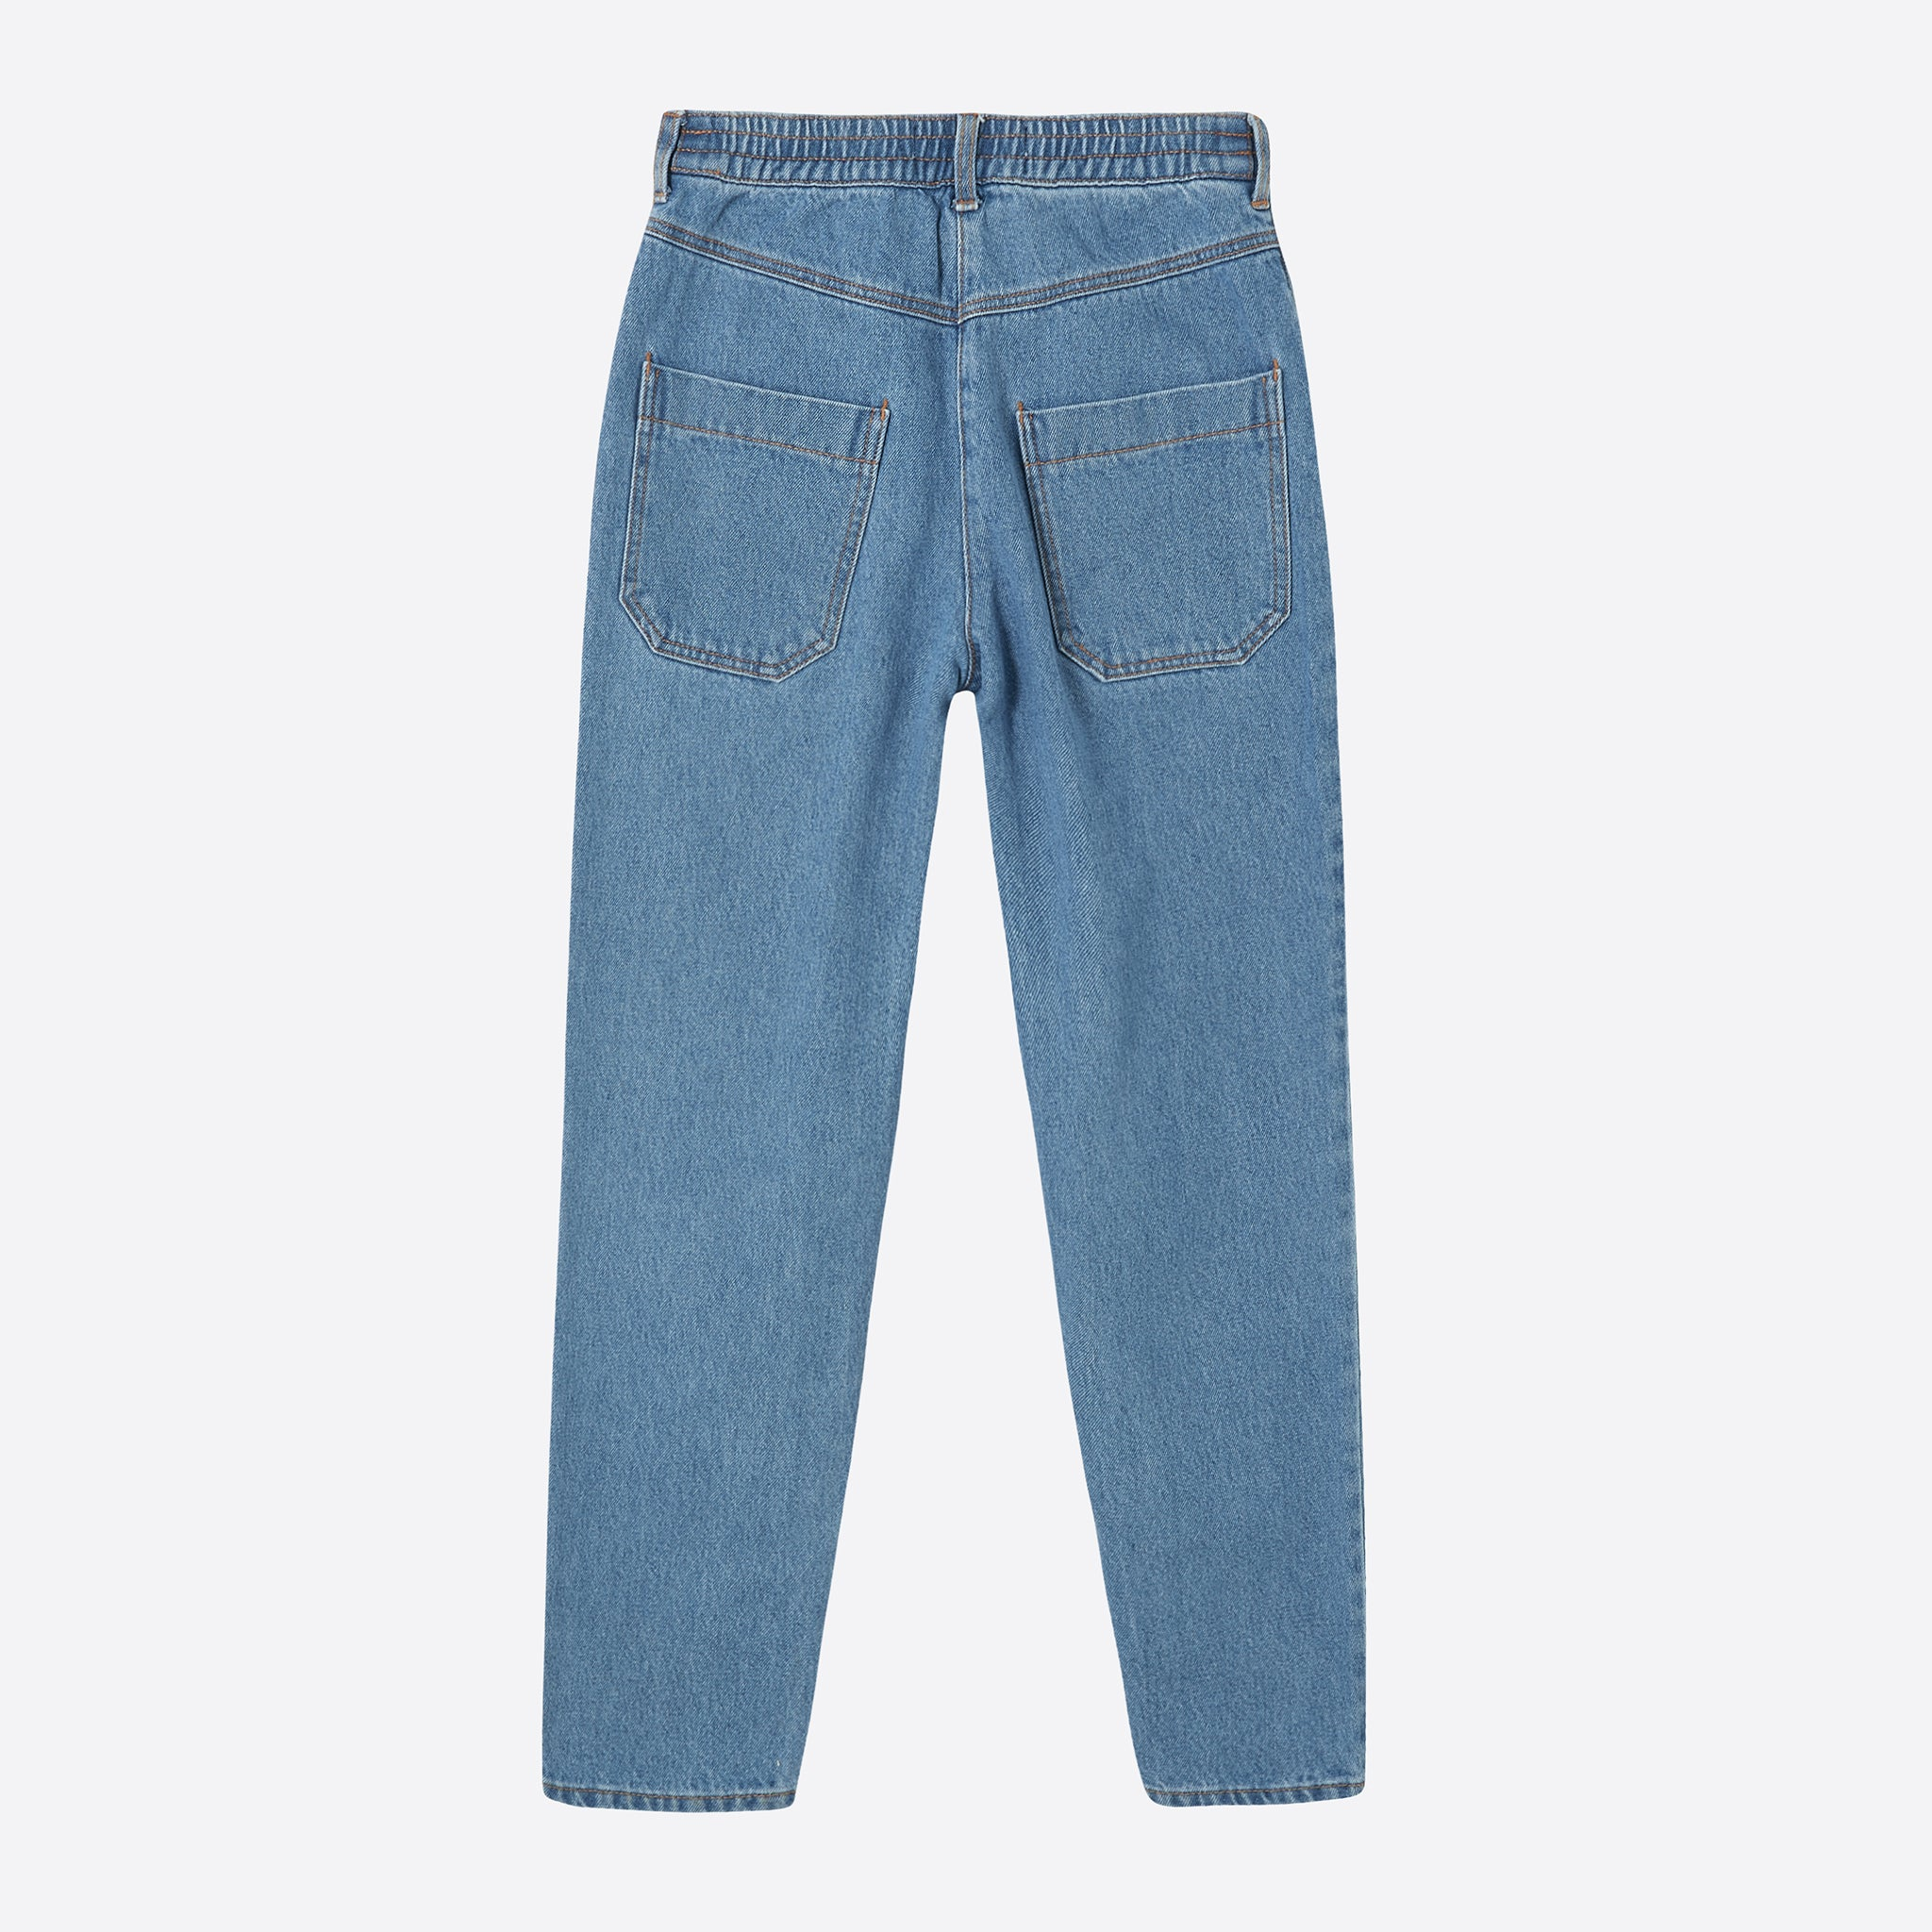 LF Markey Johnny Jeans in Mid Blue